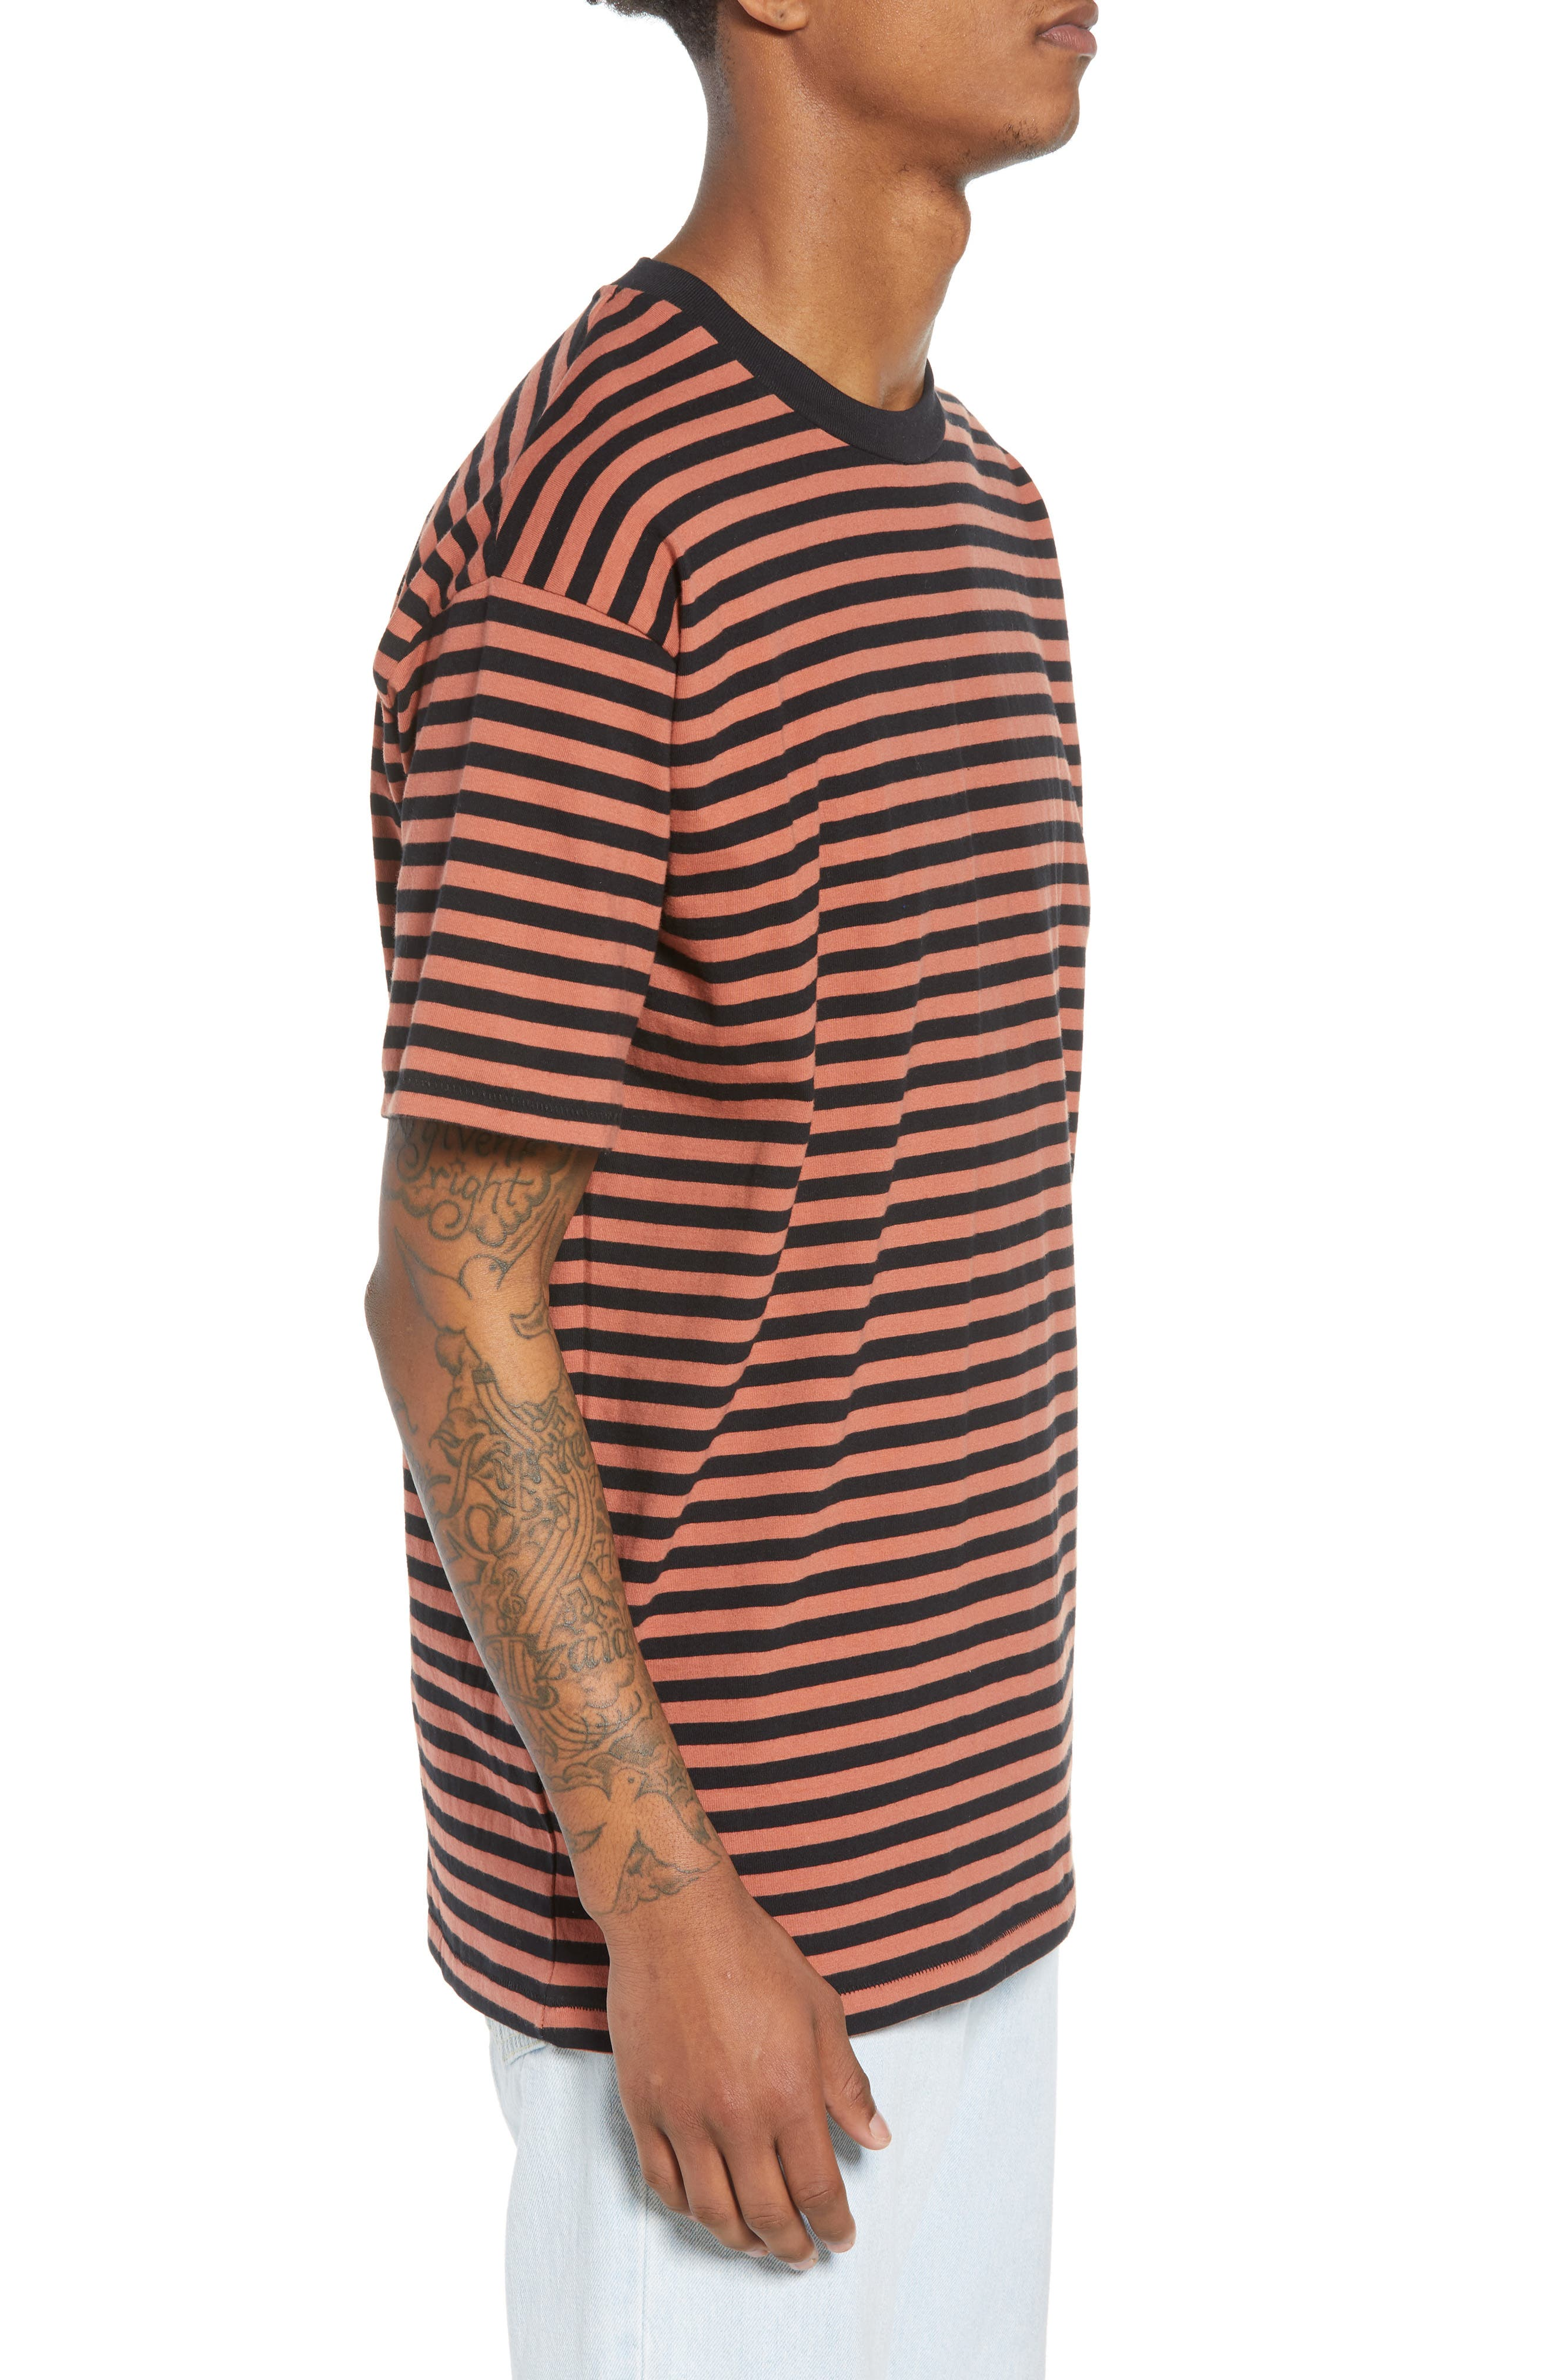 ZABEROBE Stripe Box T-Shirt,                             Alternate thumbnail 3, color,                             Bronze/ Black